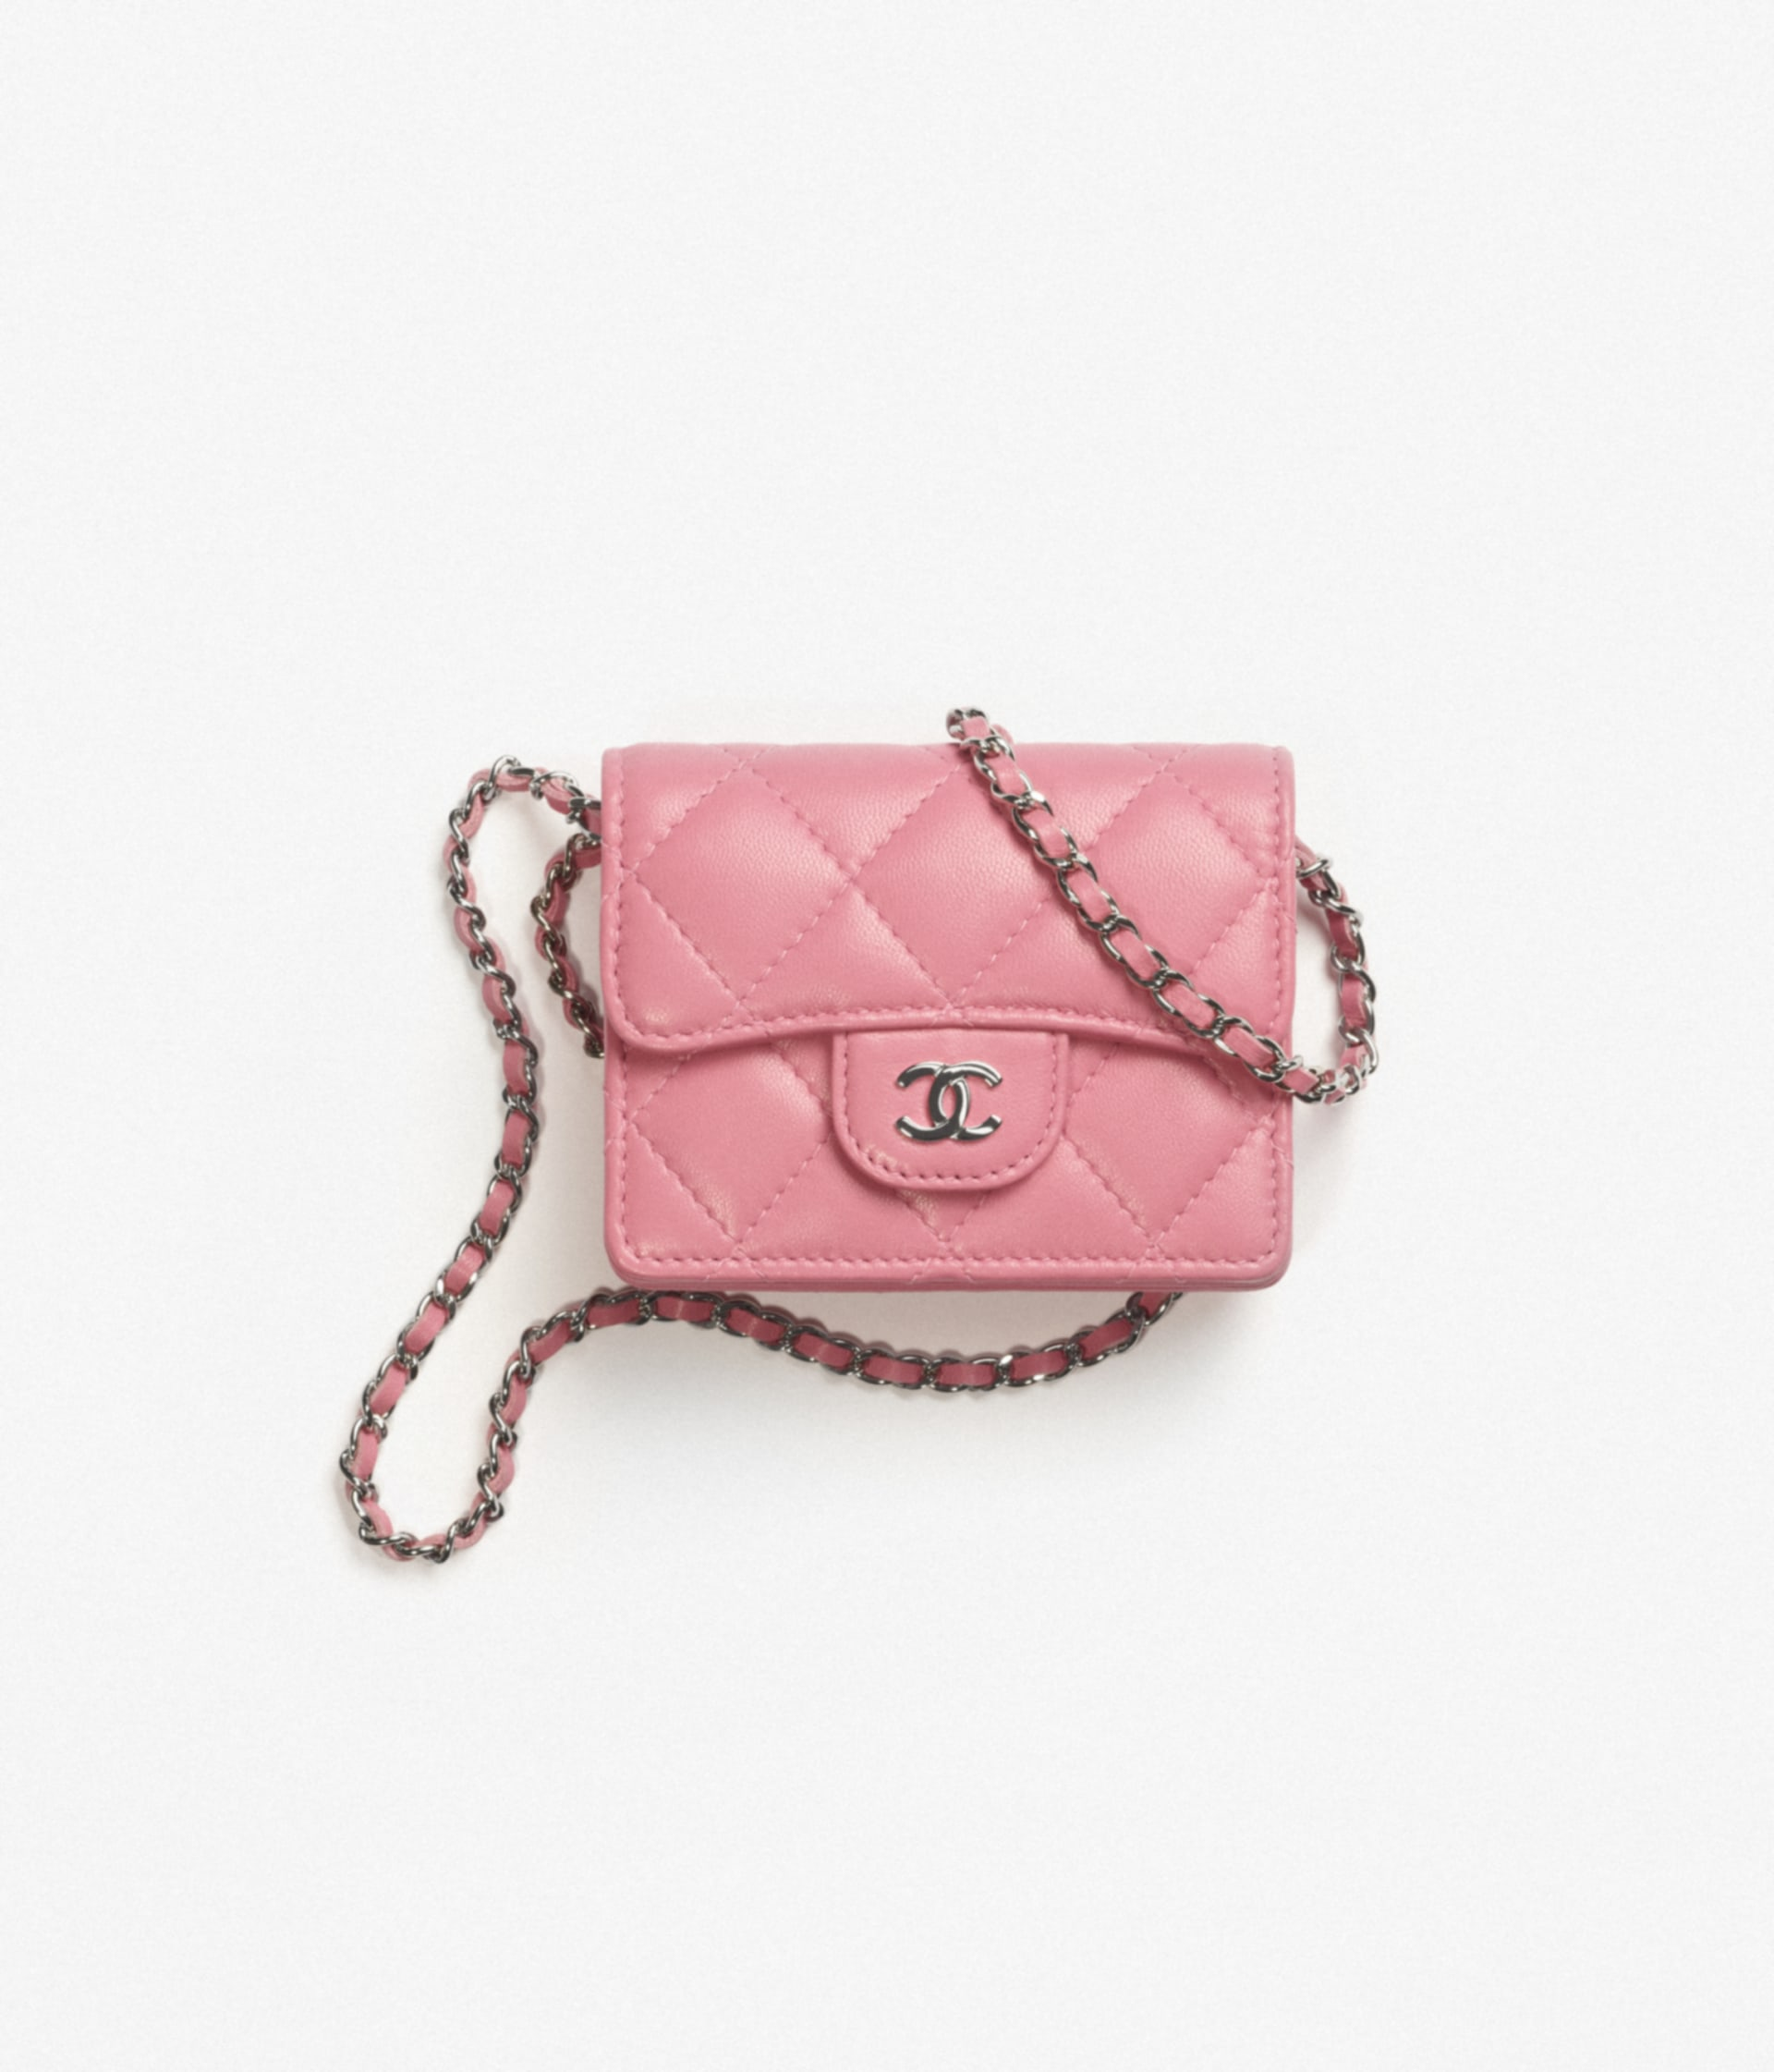 image 1 - Classic Flap Card Holder with Chain - Lambskin & Silver-Tone Metal - Light Pink